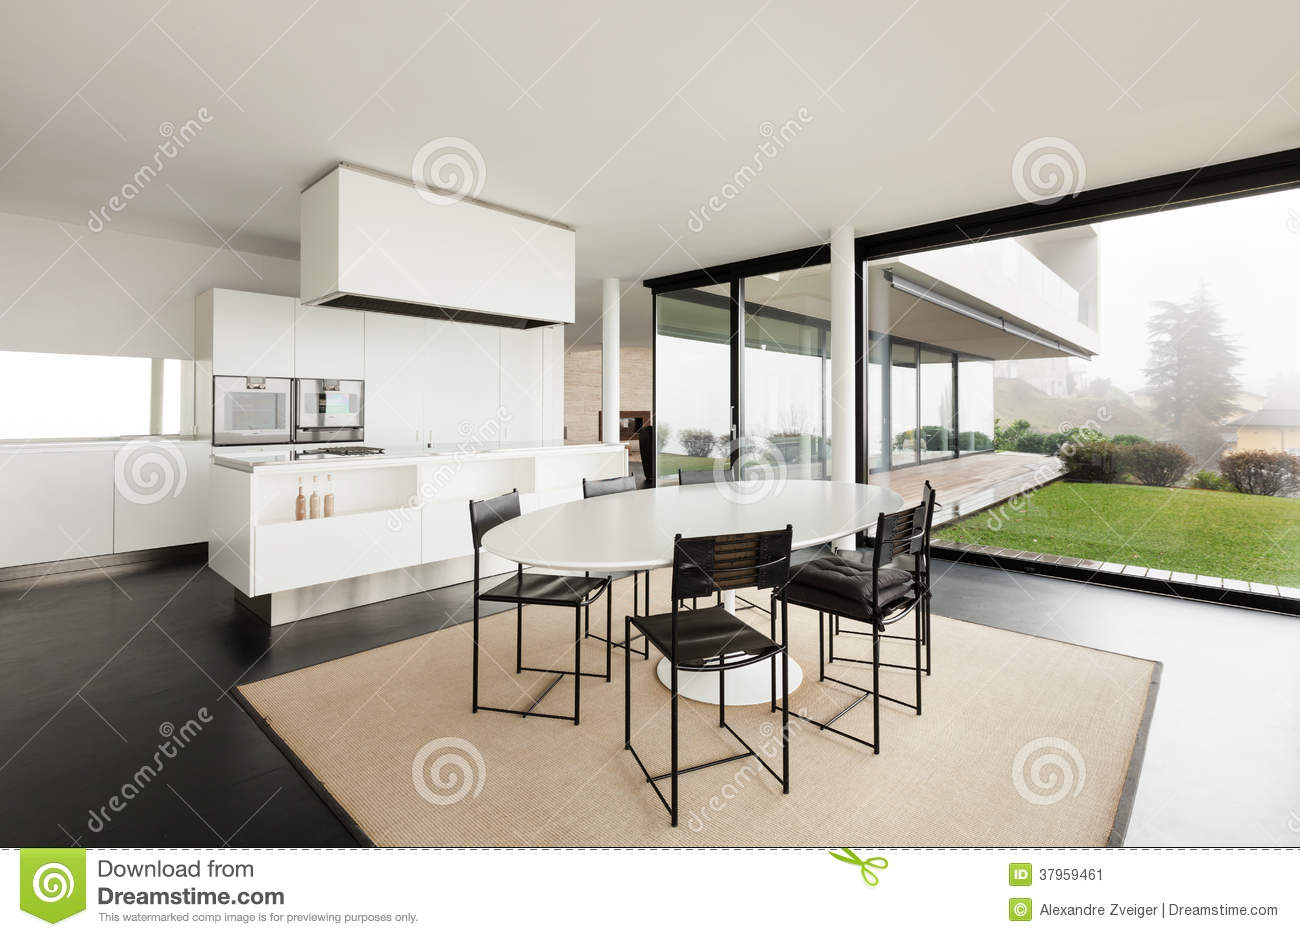 Architecture int rieur d 39 une villa moderne image stock for Architecture moderne interieur